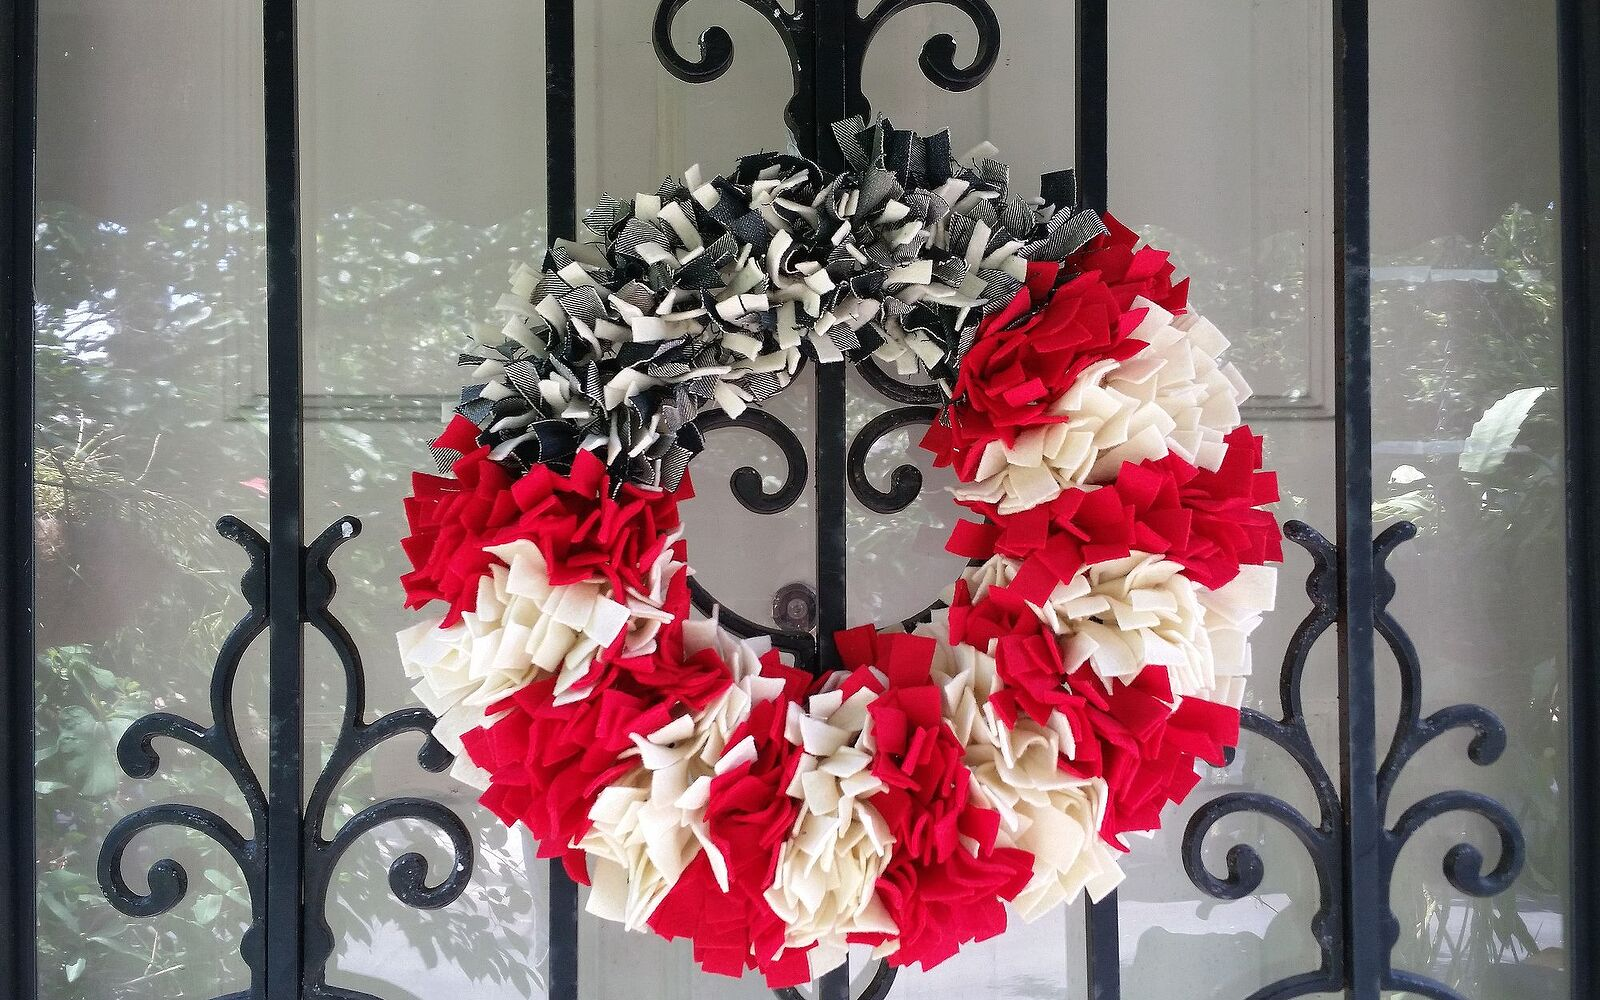 s 30 adorable diy ideas for july 4th, Shred up your jeans into a fluffy wreath